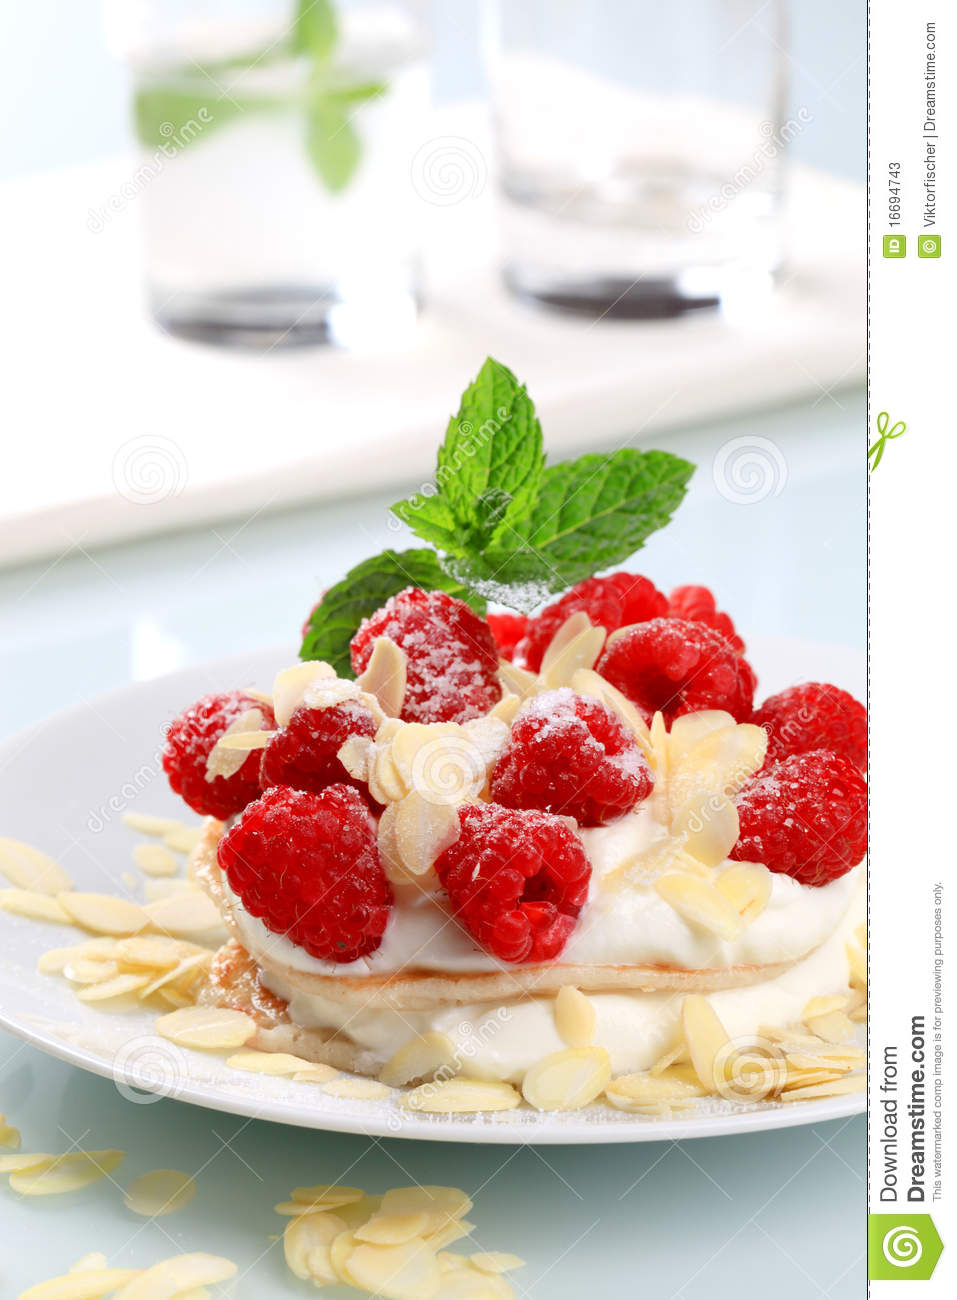 Cream Cheese Pancakes With Raspberries Stock Photos ...